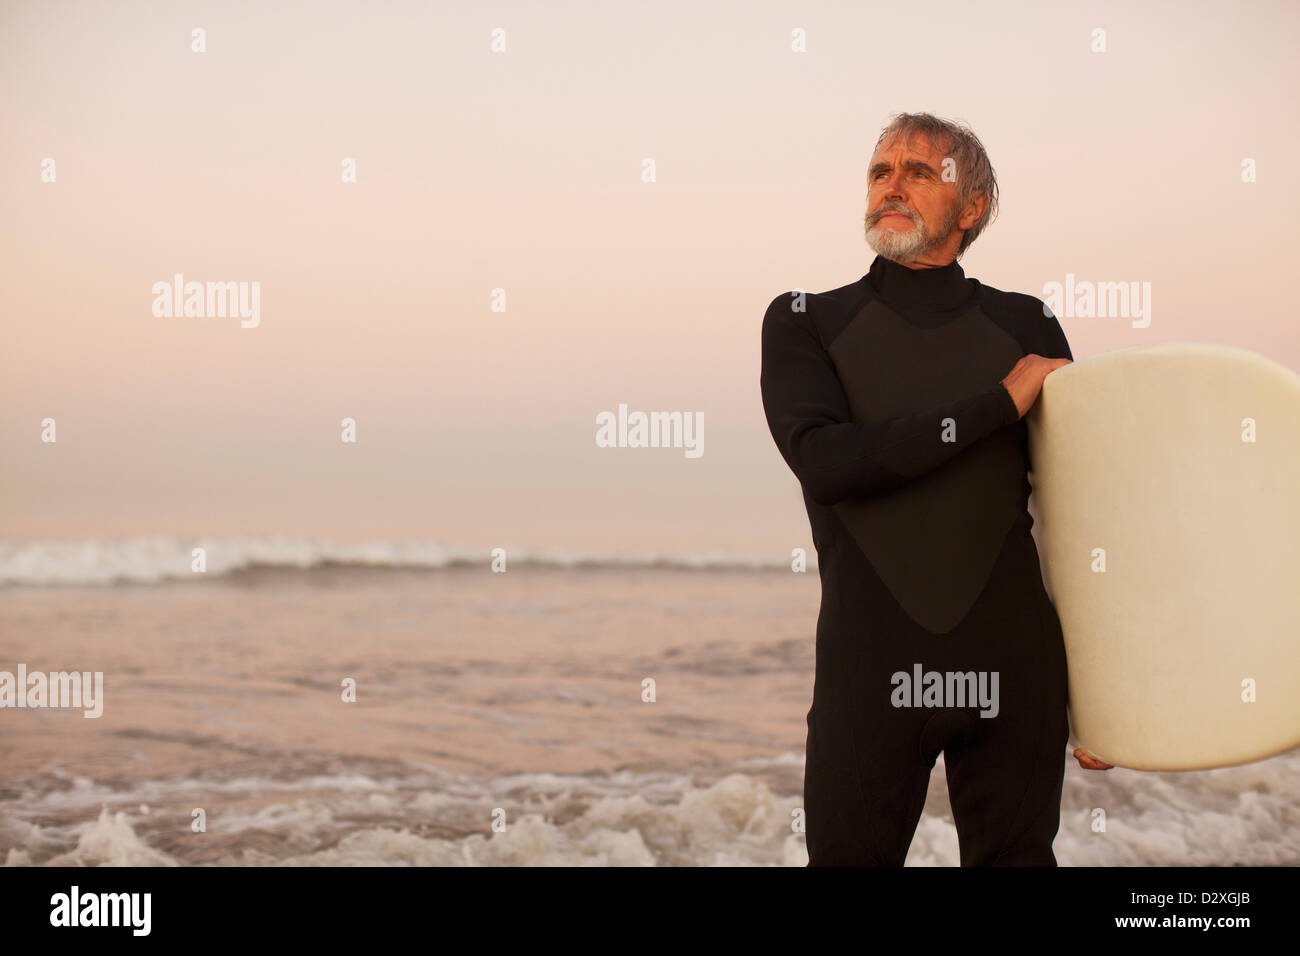 Older surfer carrying board on beach - Stock Image